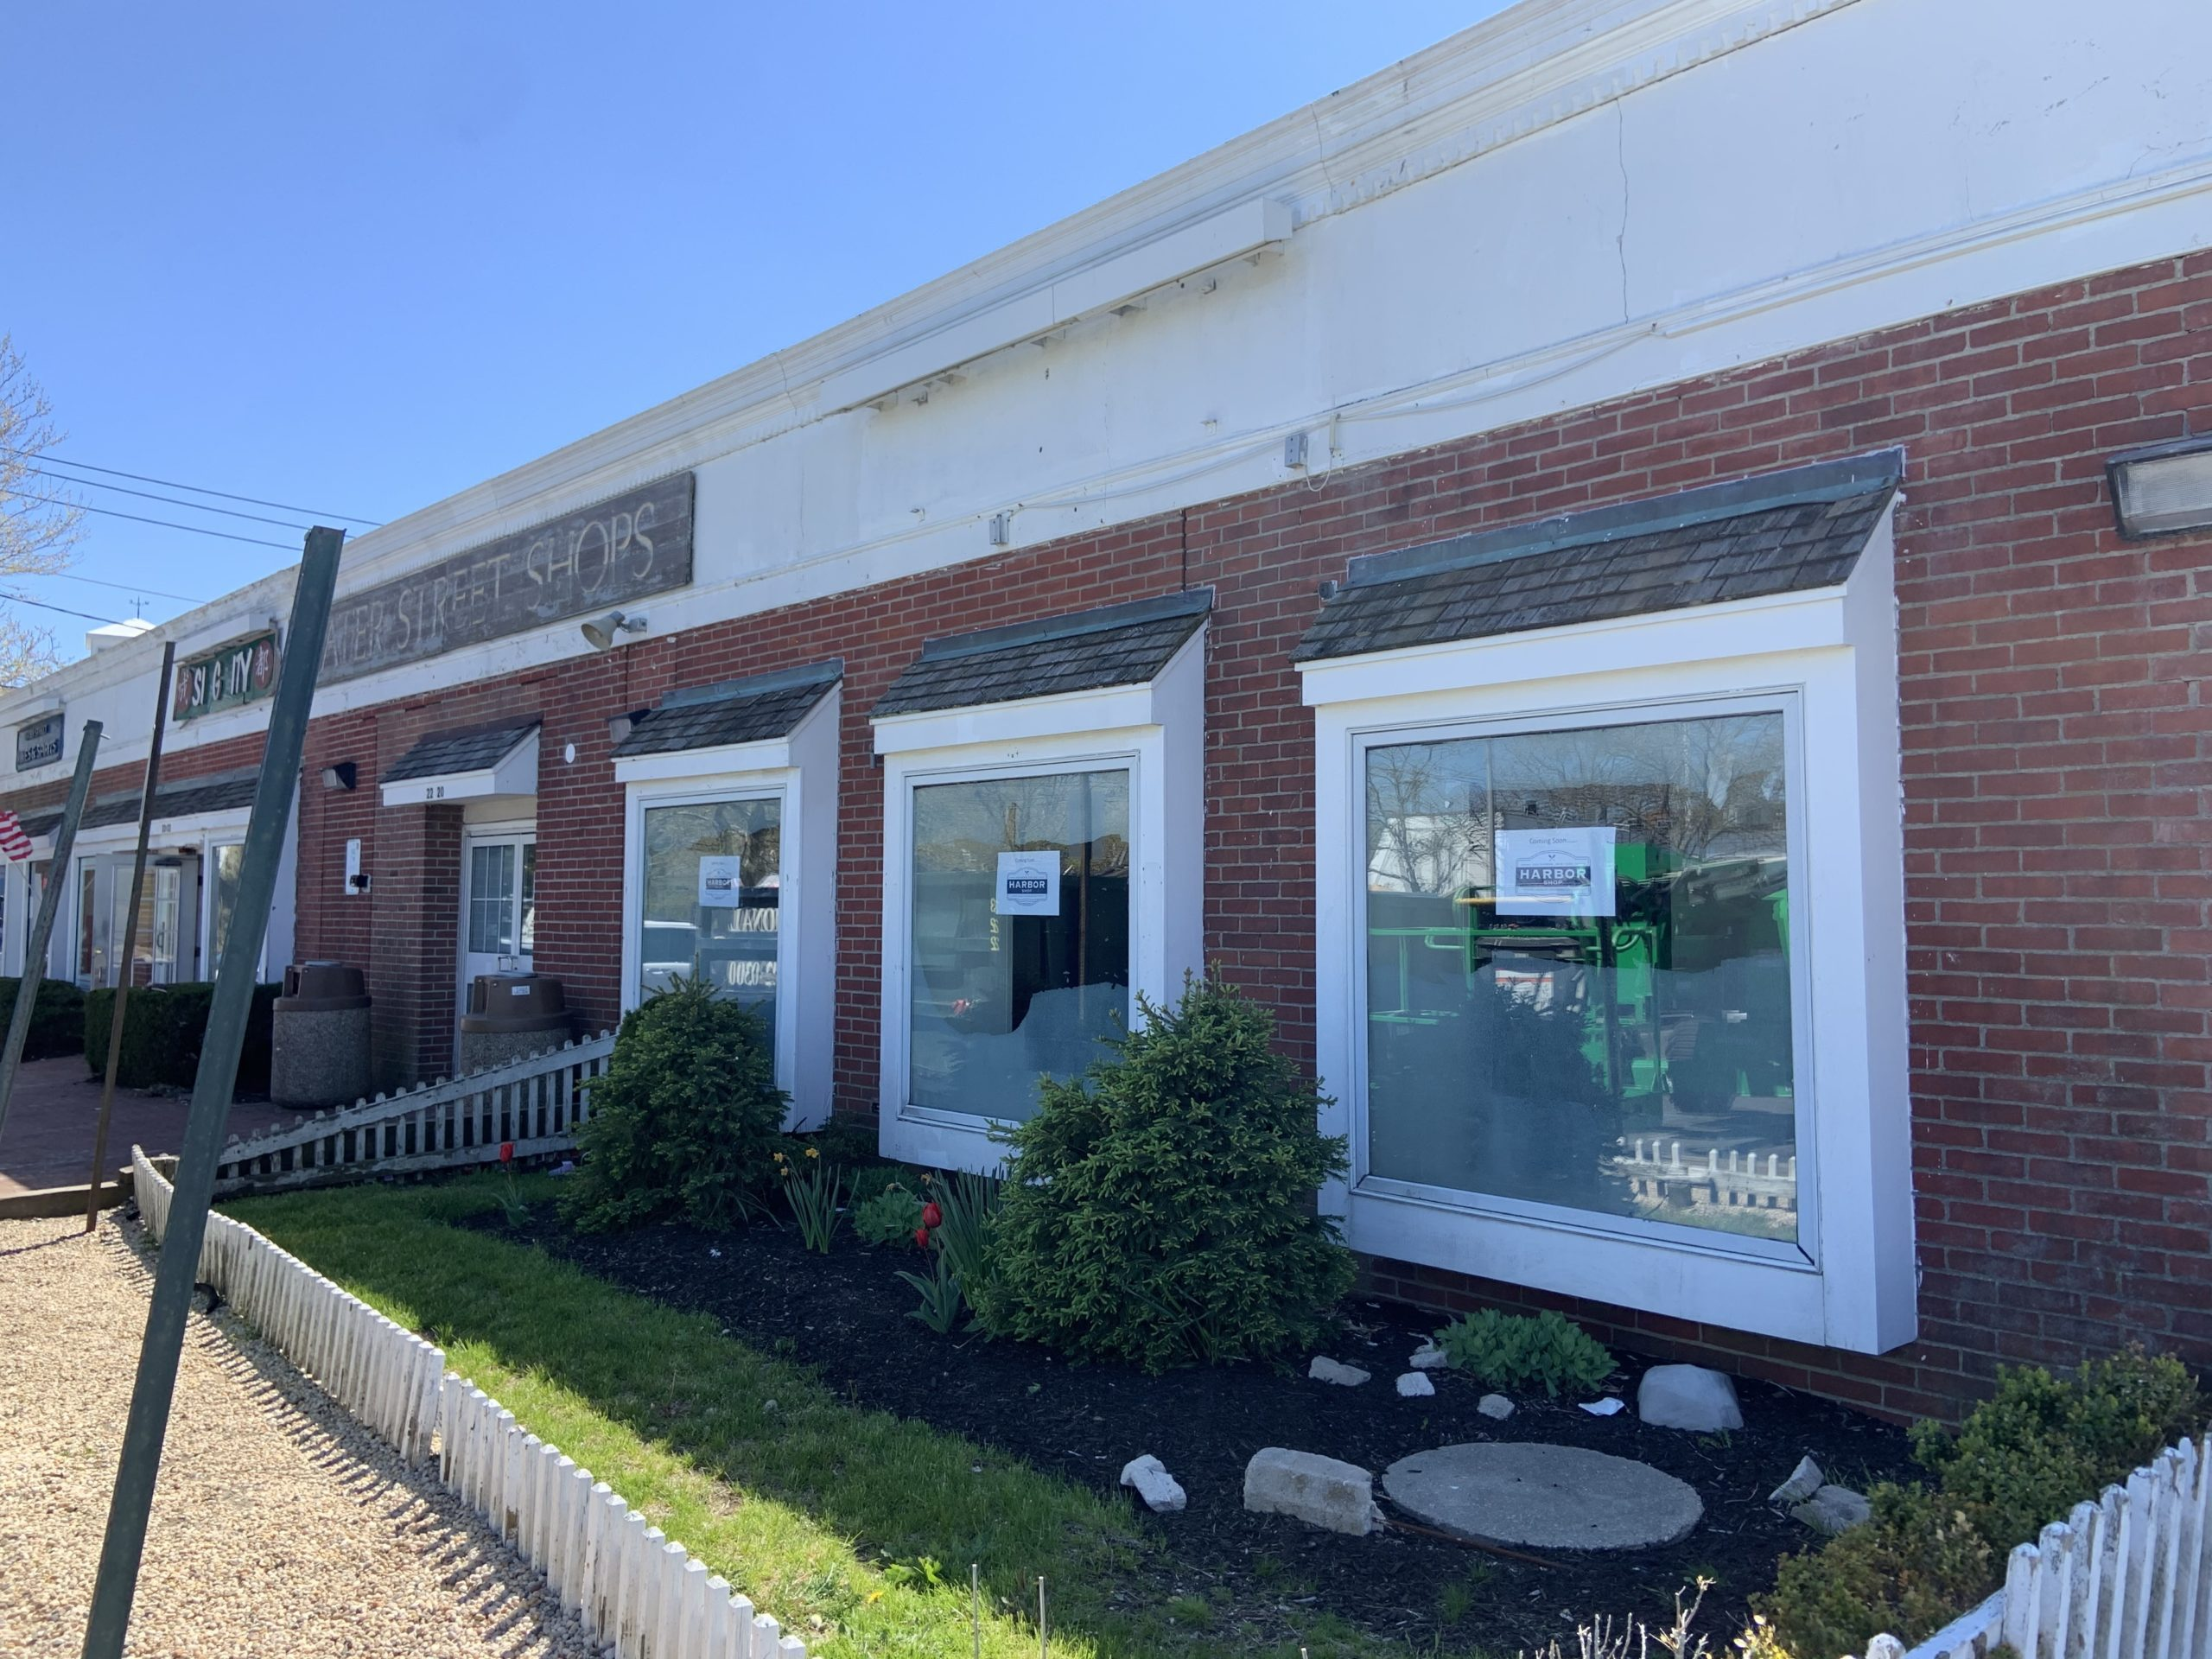 Signs in the window announce a new convenience store in the space formerly occupied by 7-Eleven in Sag Harbor. STEPHEN J. KOTZ